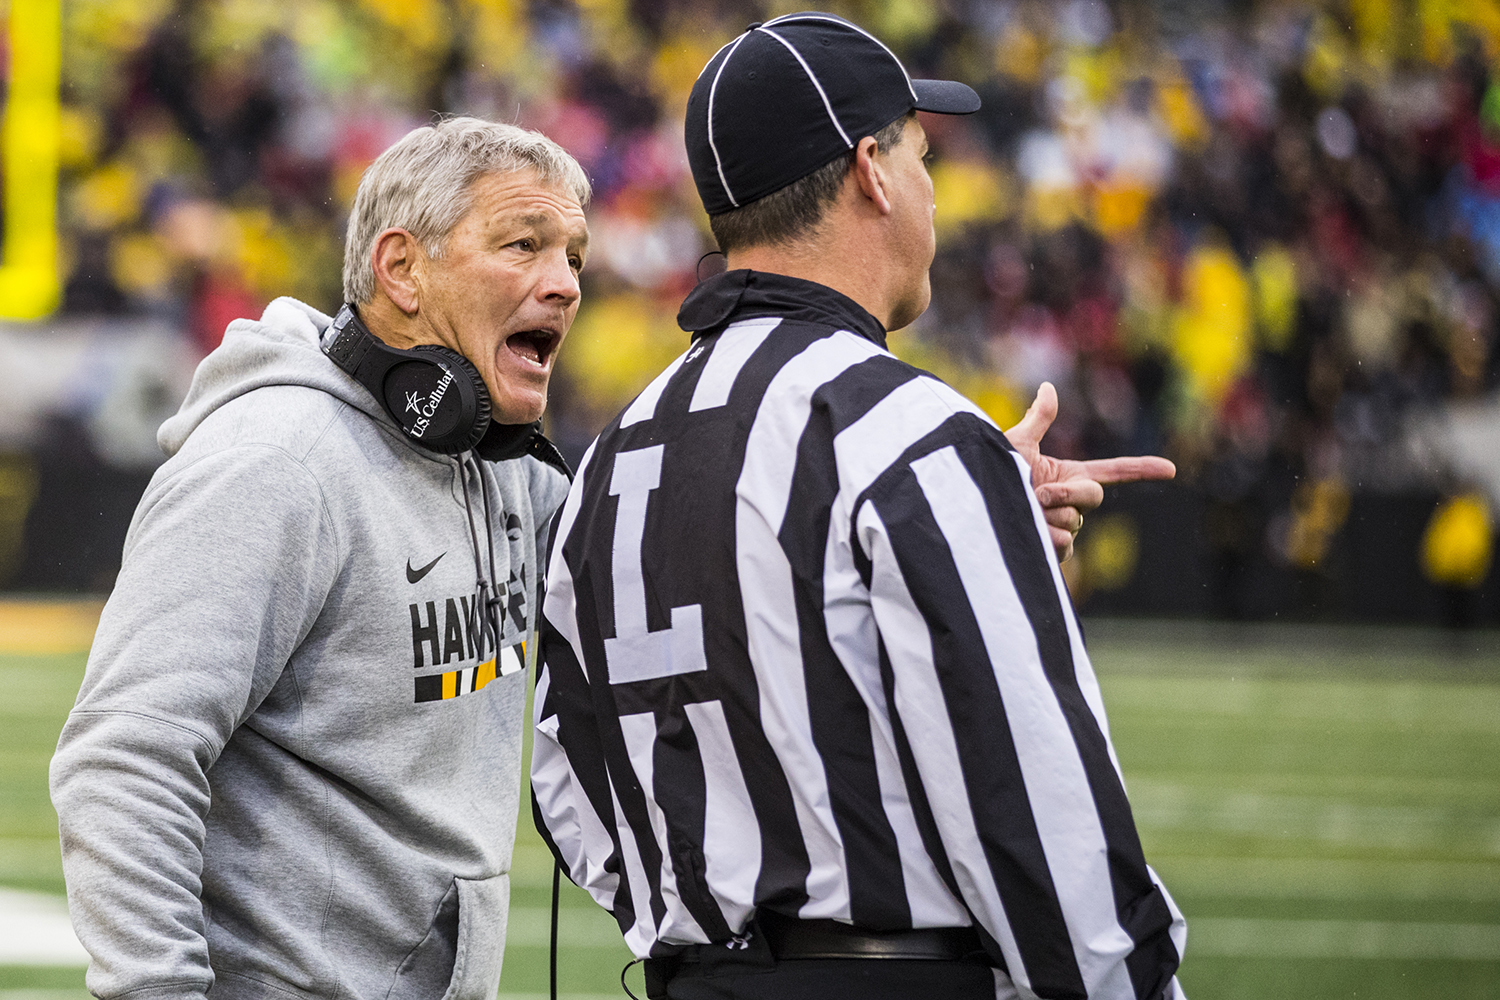 Iowa head coach Kirk Ferentz discusses the fine points of officiating with the line judge during Iowa's game against Nebraska at Kinnick Stadium in Iowa City on Friday, November 23, 2018. The Hawkeyes defeated the Huskers 31-28.